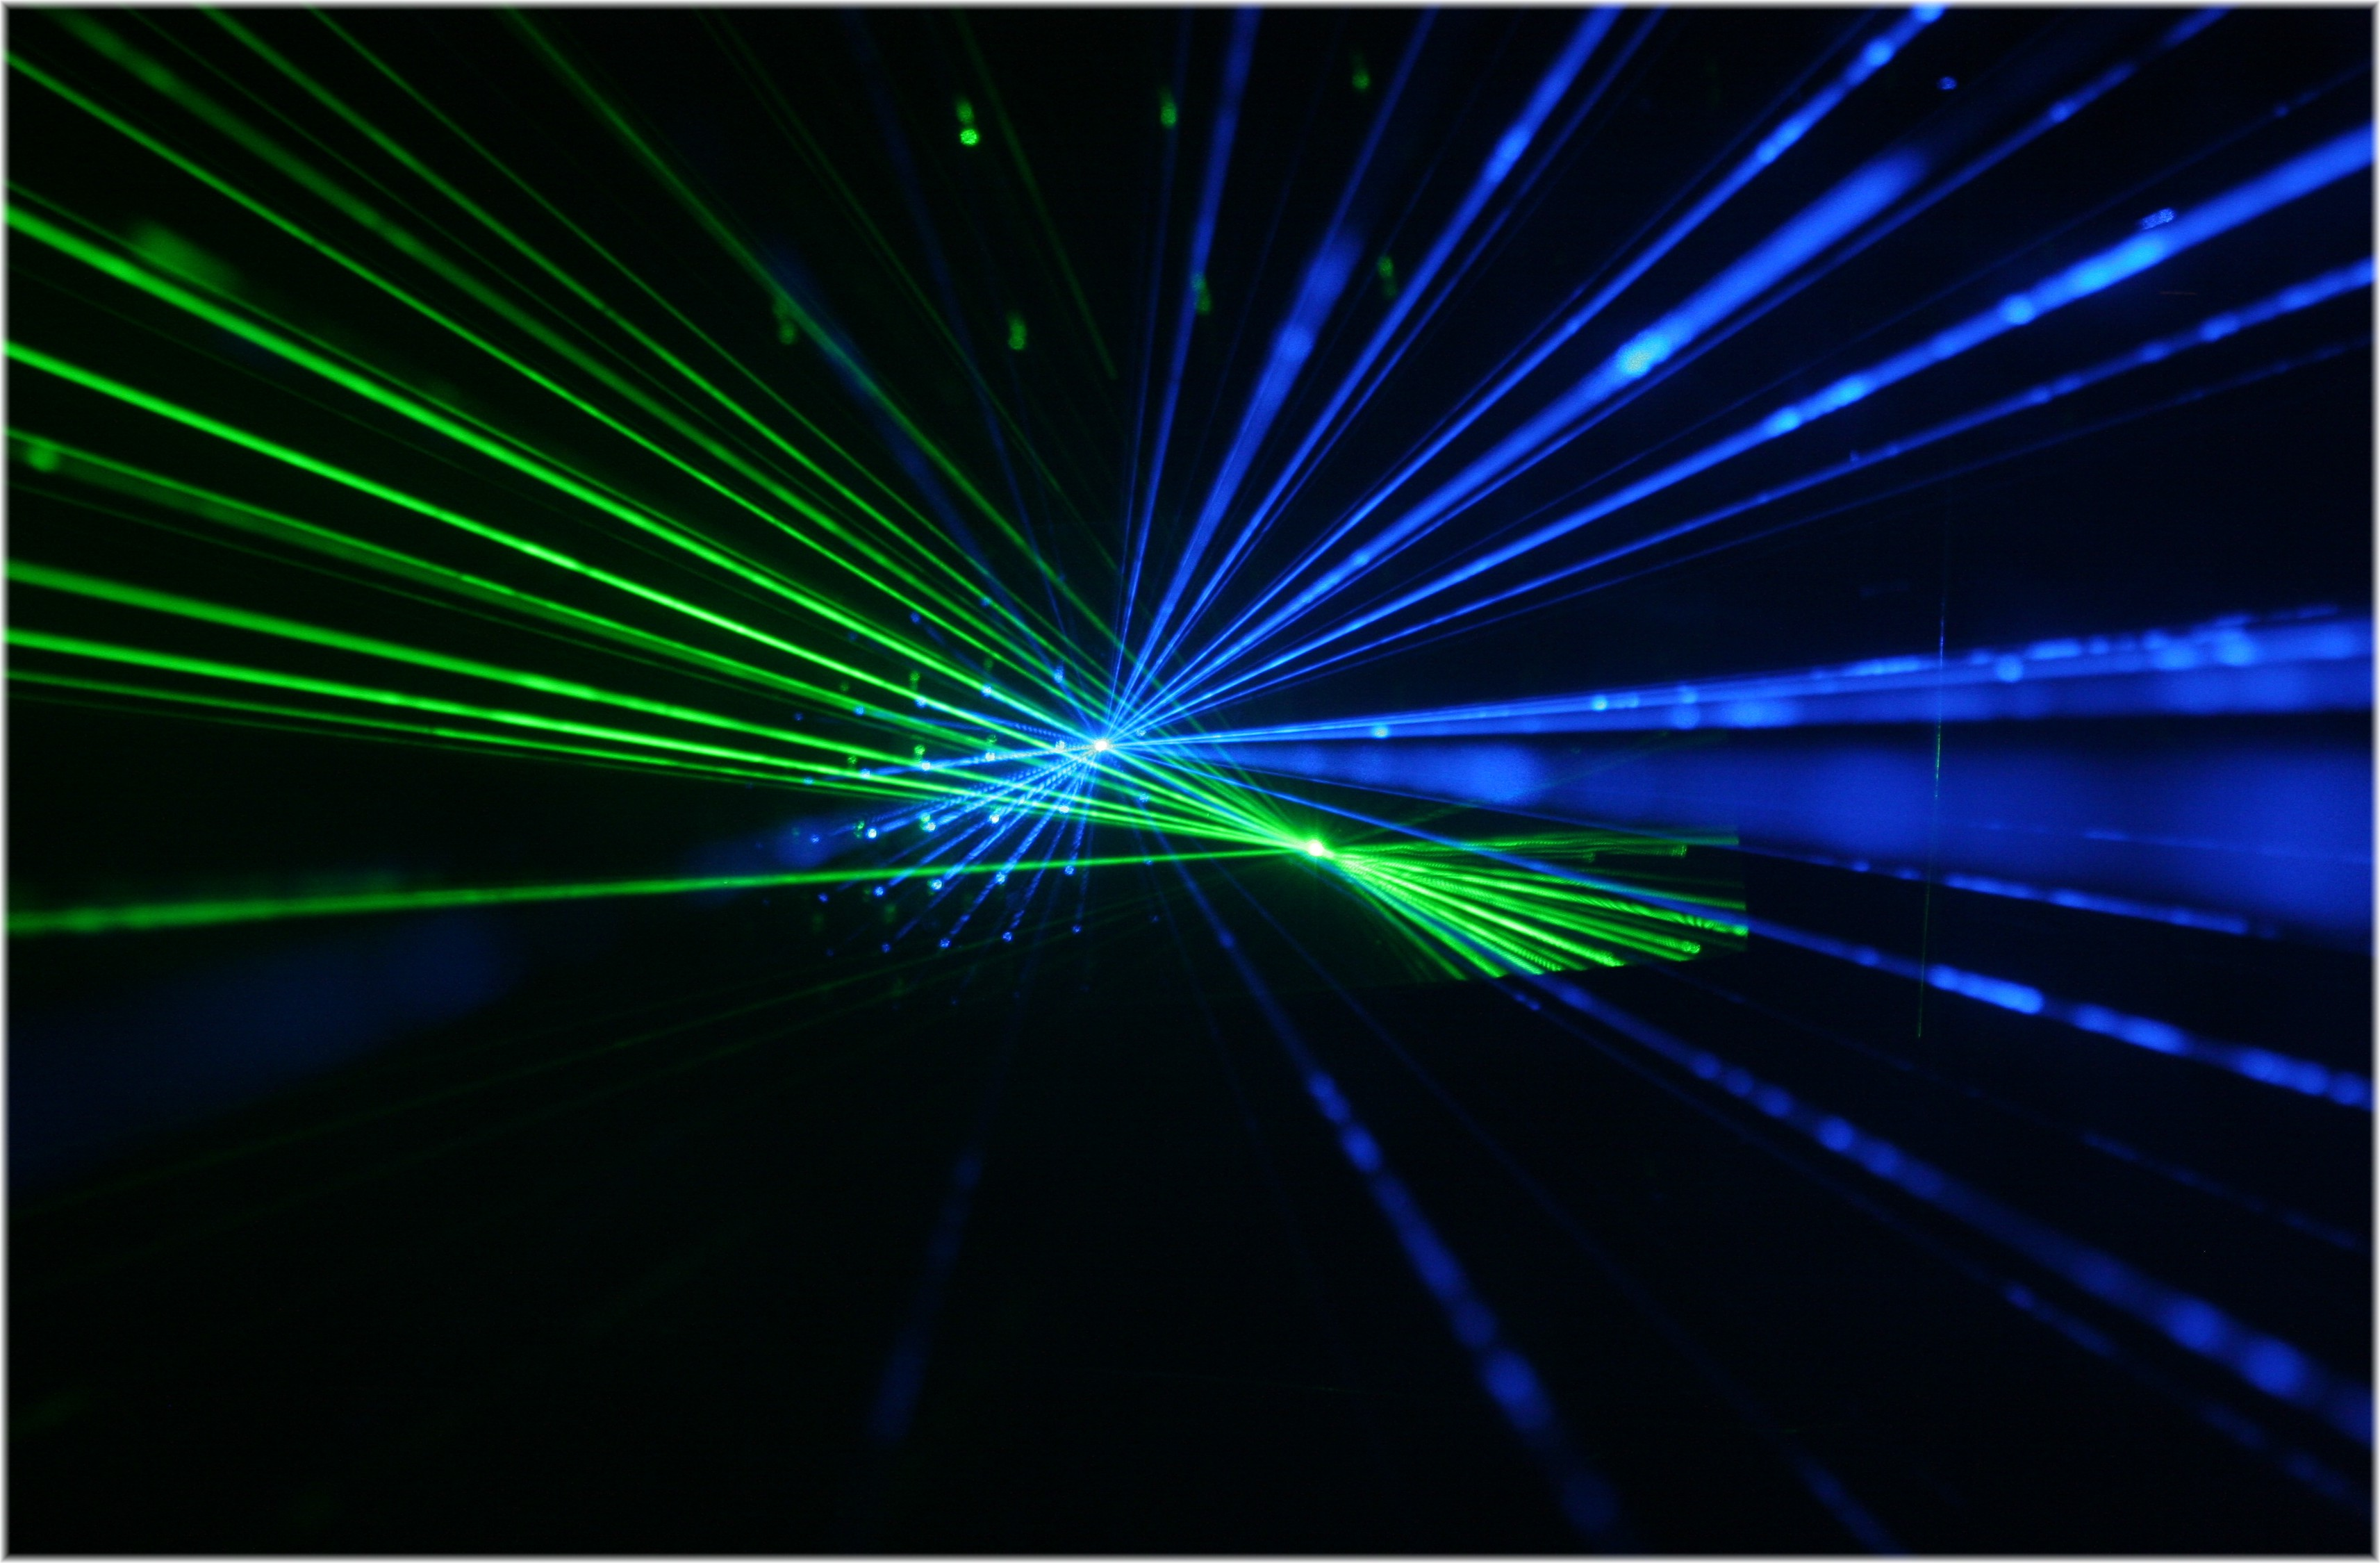 Blue and Green Lasers